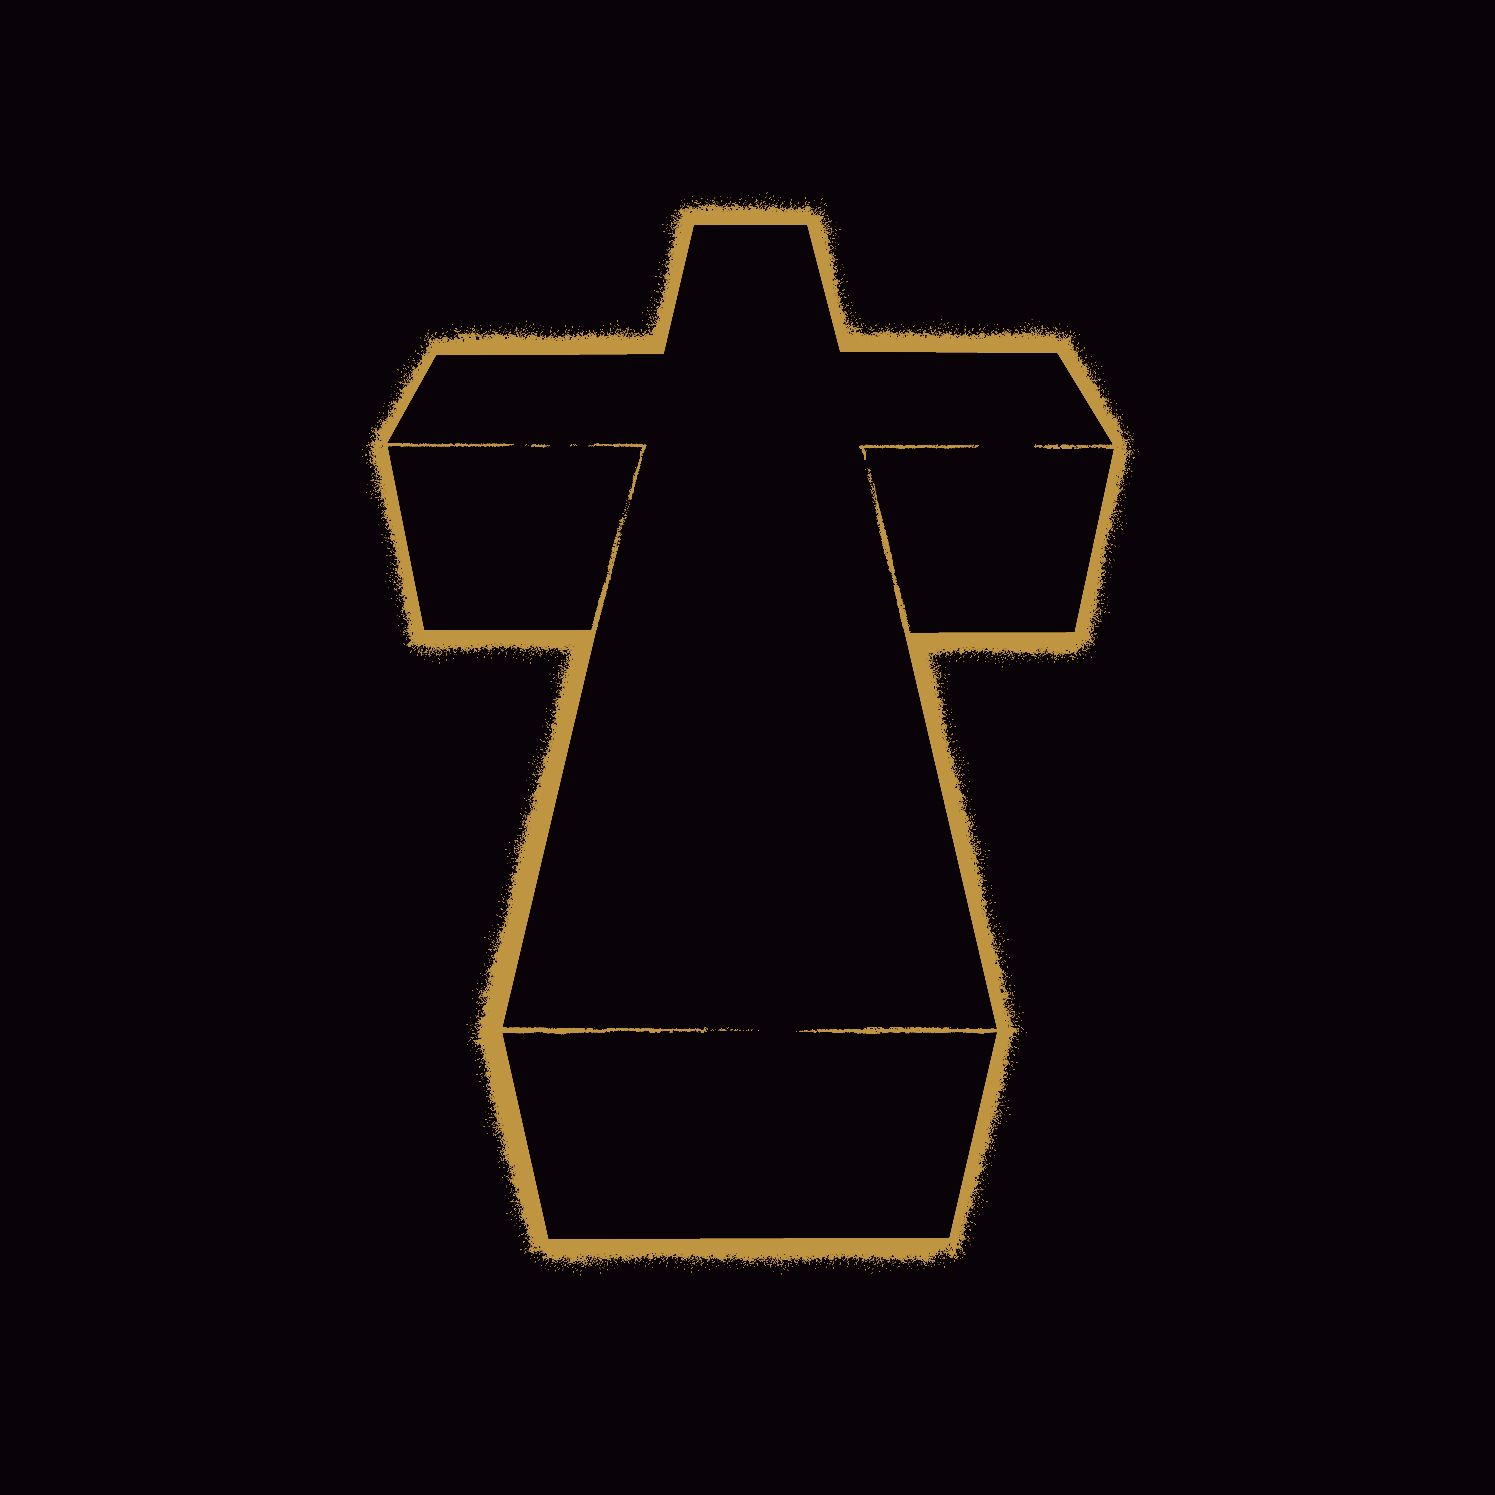 justice Top 50 Songs of 2007